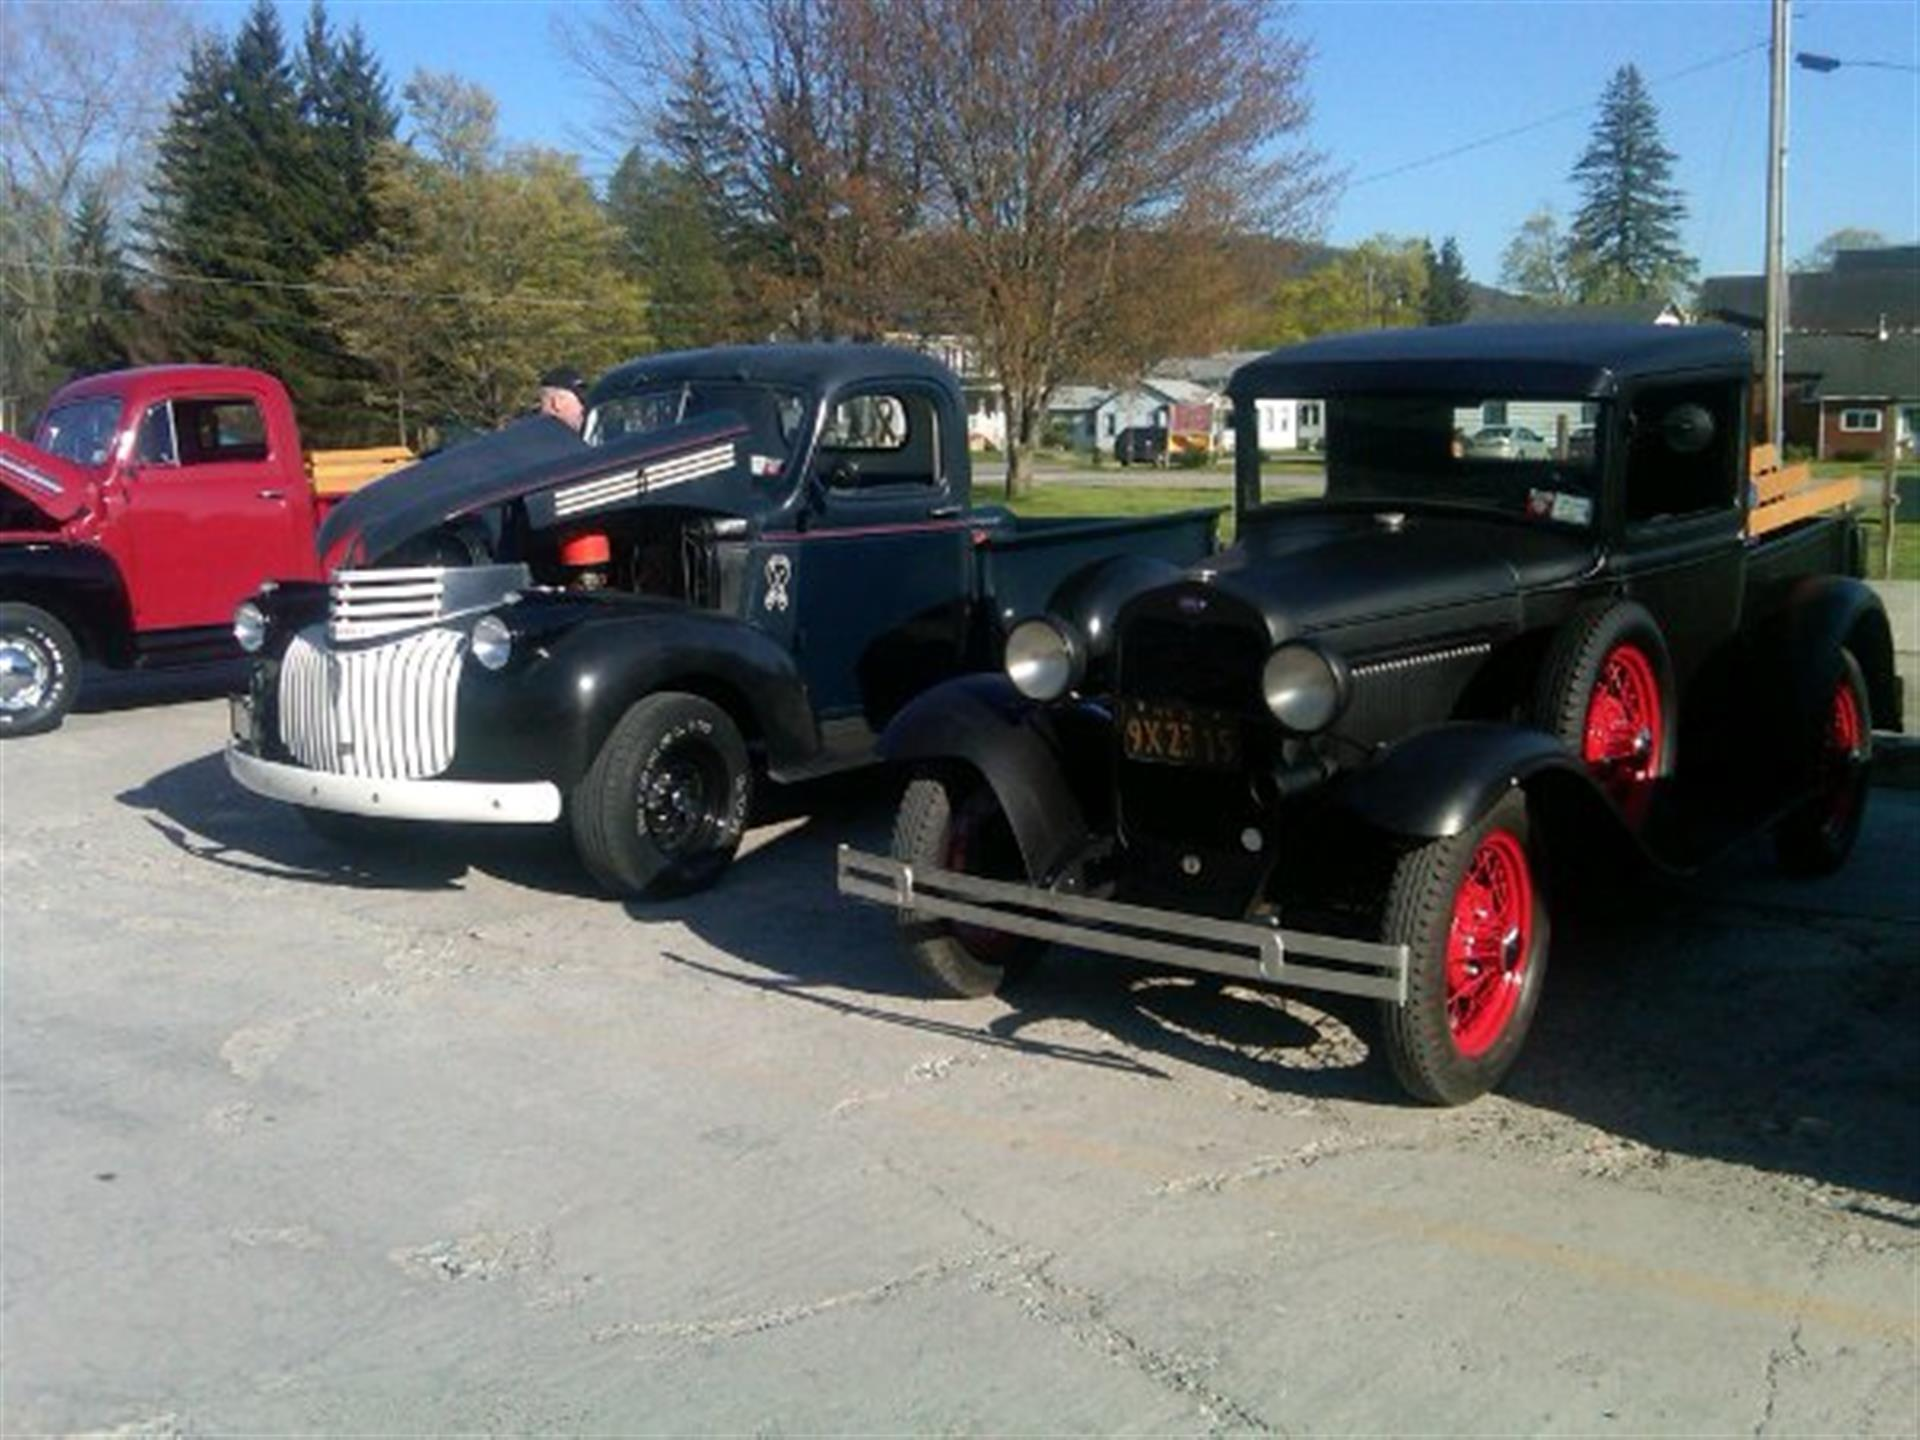 Three vintage cars